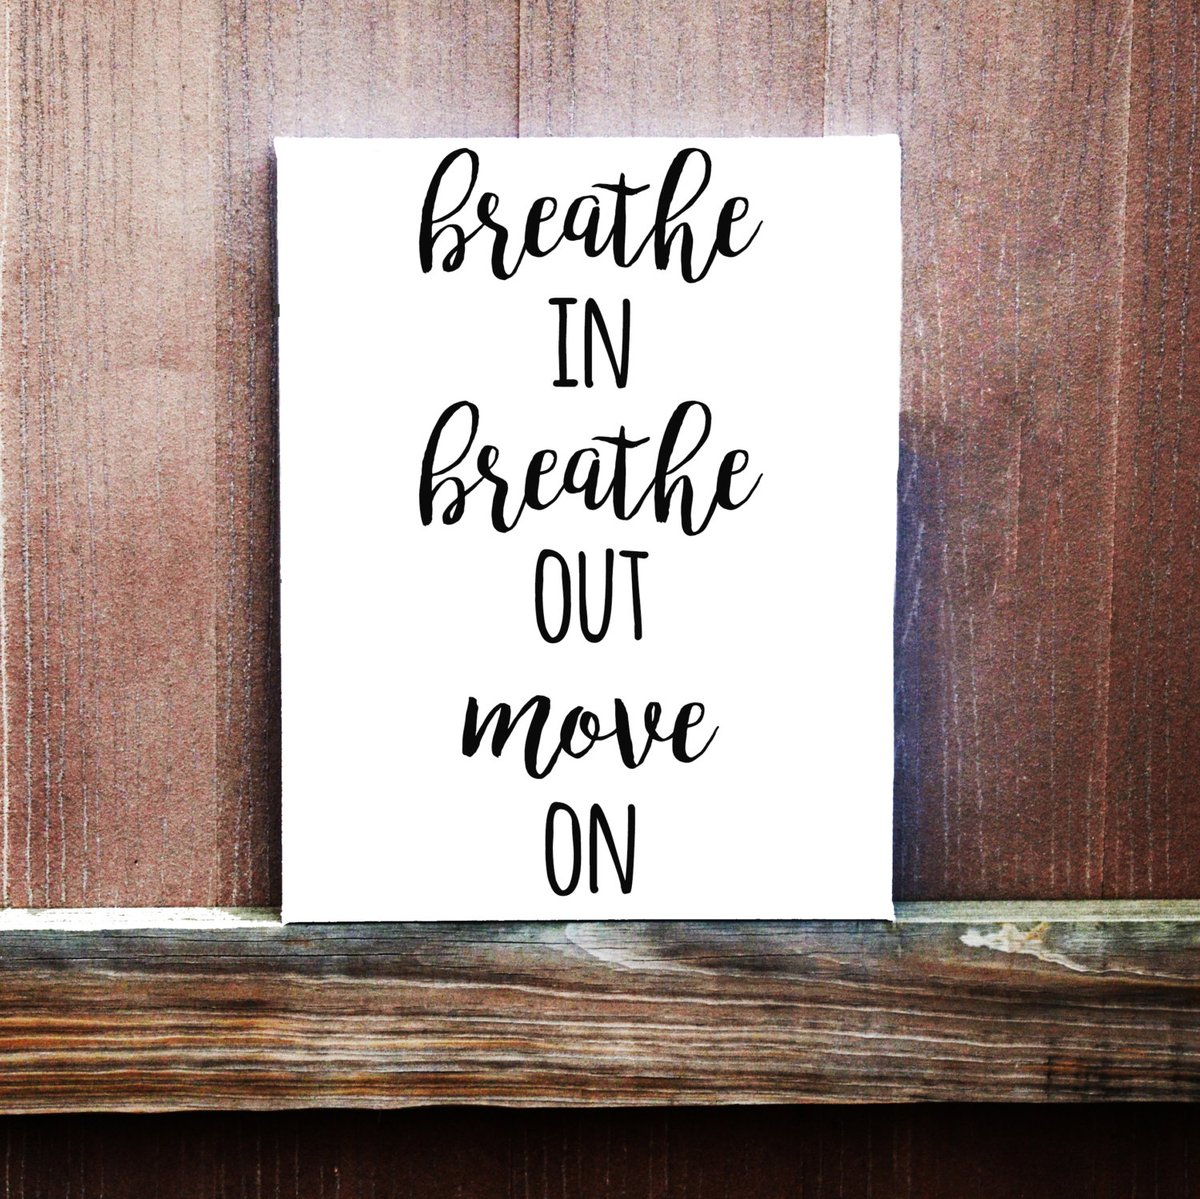 'Breathe in. Breathe out. Move on ' ~ @actionhappiness #mindfulness